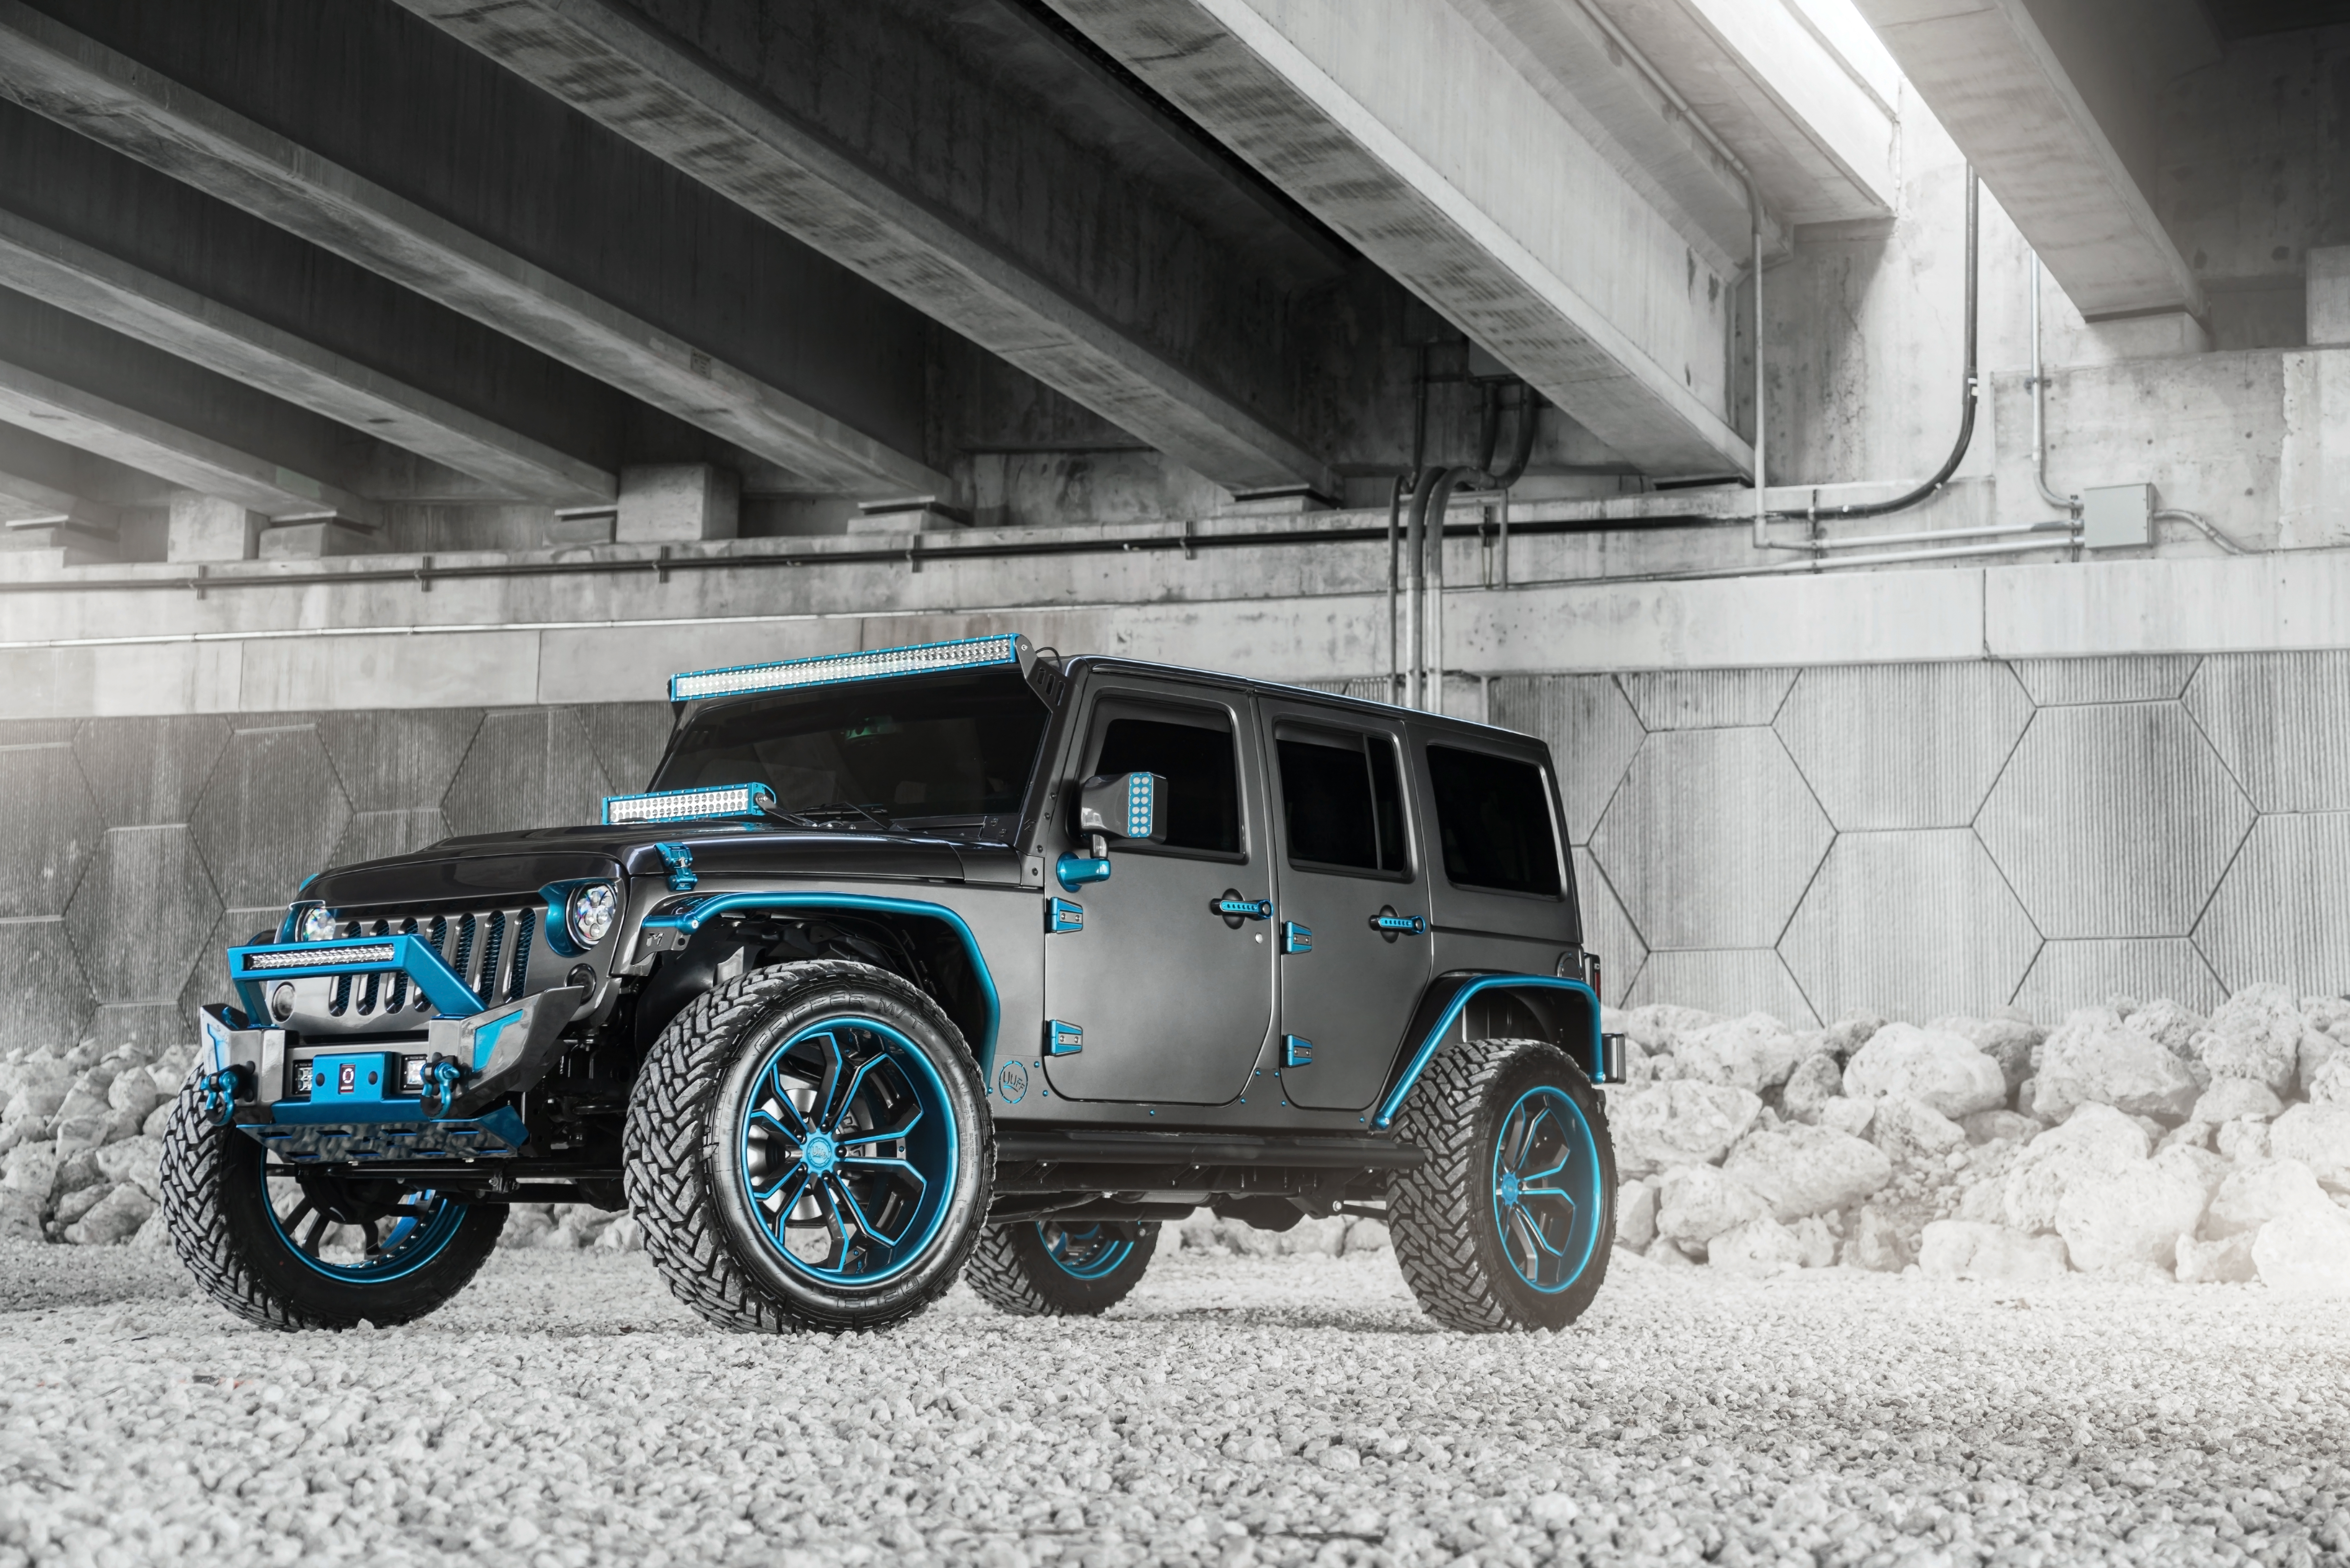 Jeep Wrangler 8k 2020 Hd Cars 4k Wallpapers Images Backgrounds Photos And Pictures